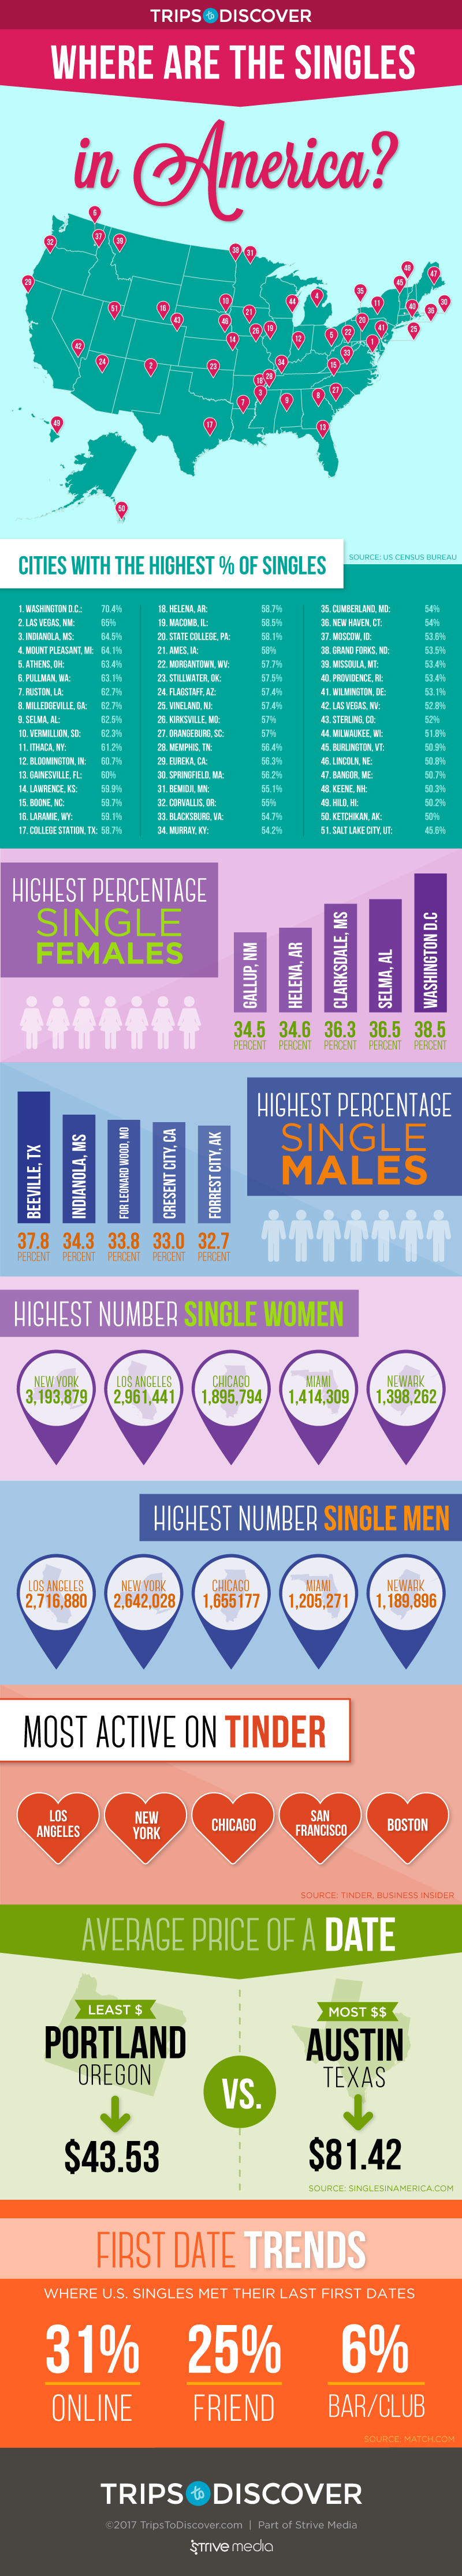 Infographic: U.S. Cities to Visit for Your Best Odds of Meeting Singles